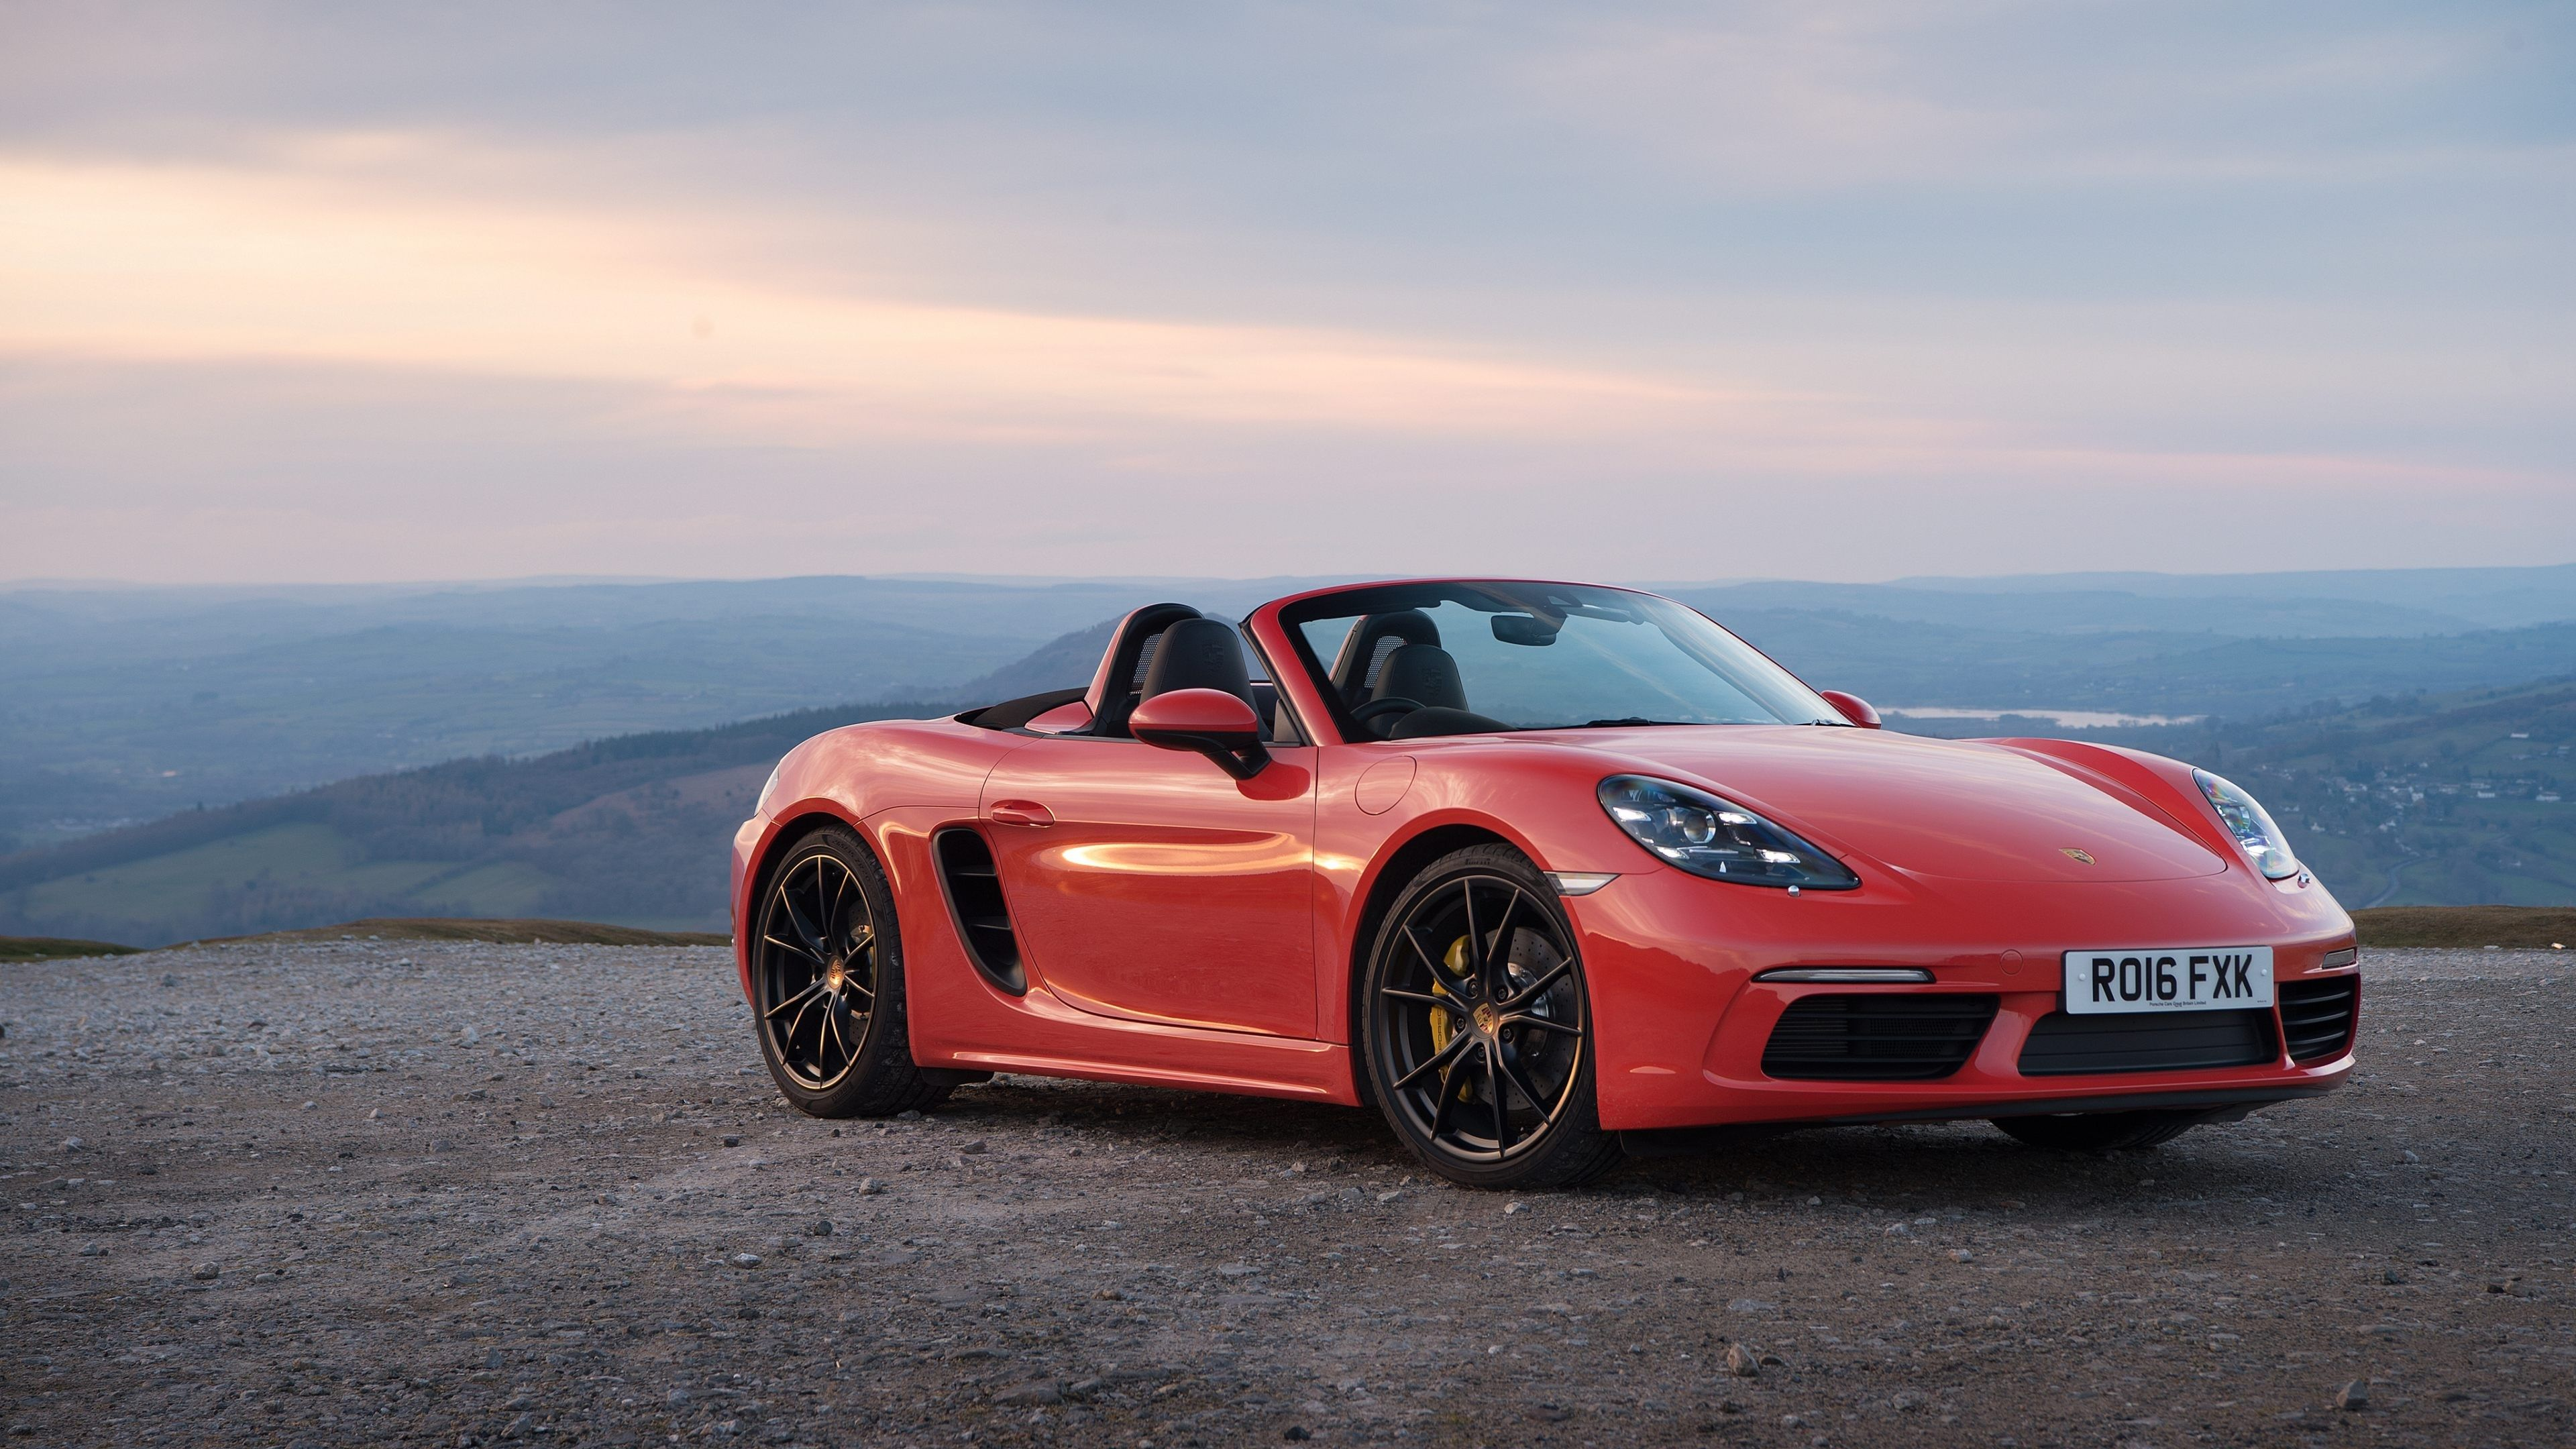 boxster porsche car 4k ultra hd wallpaper | ololoshenka | pinterest